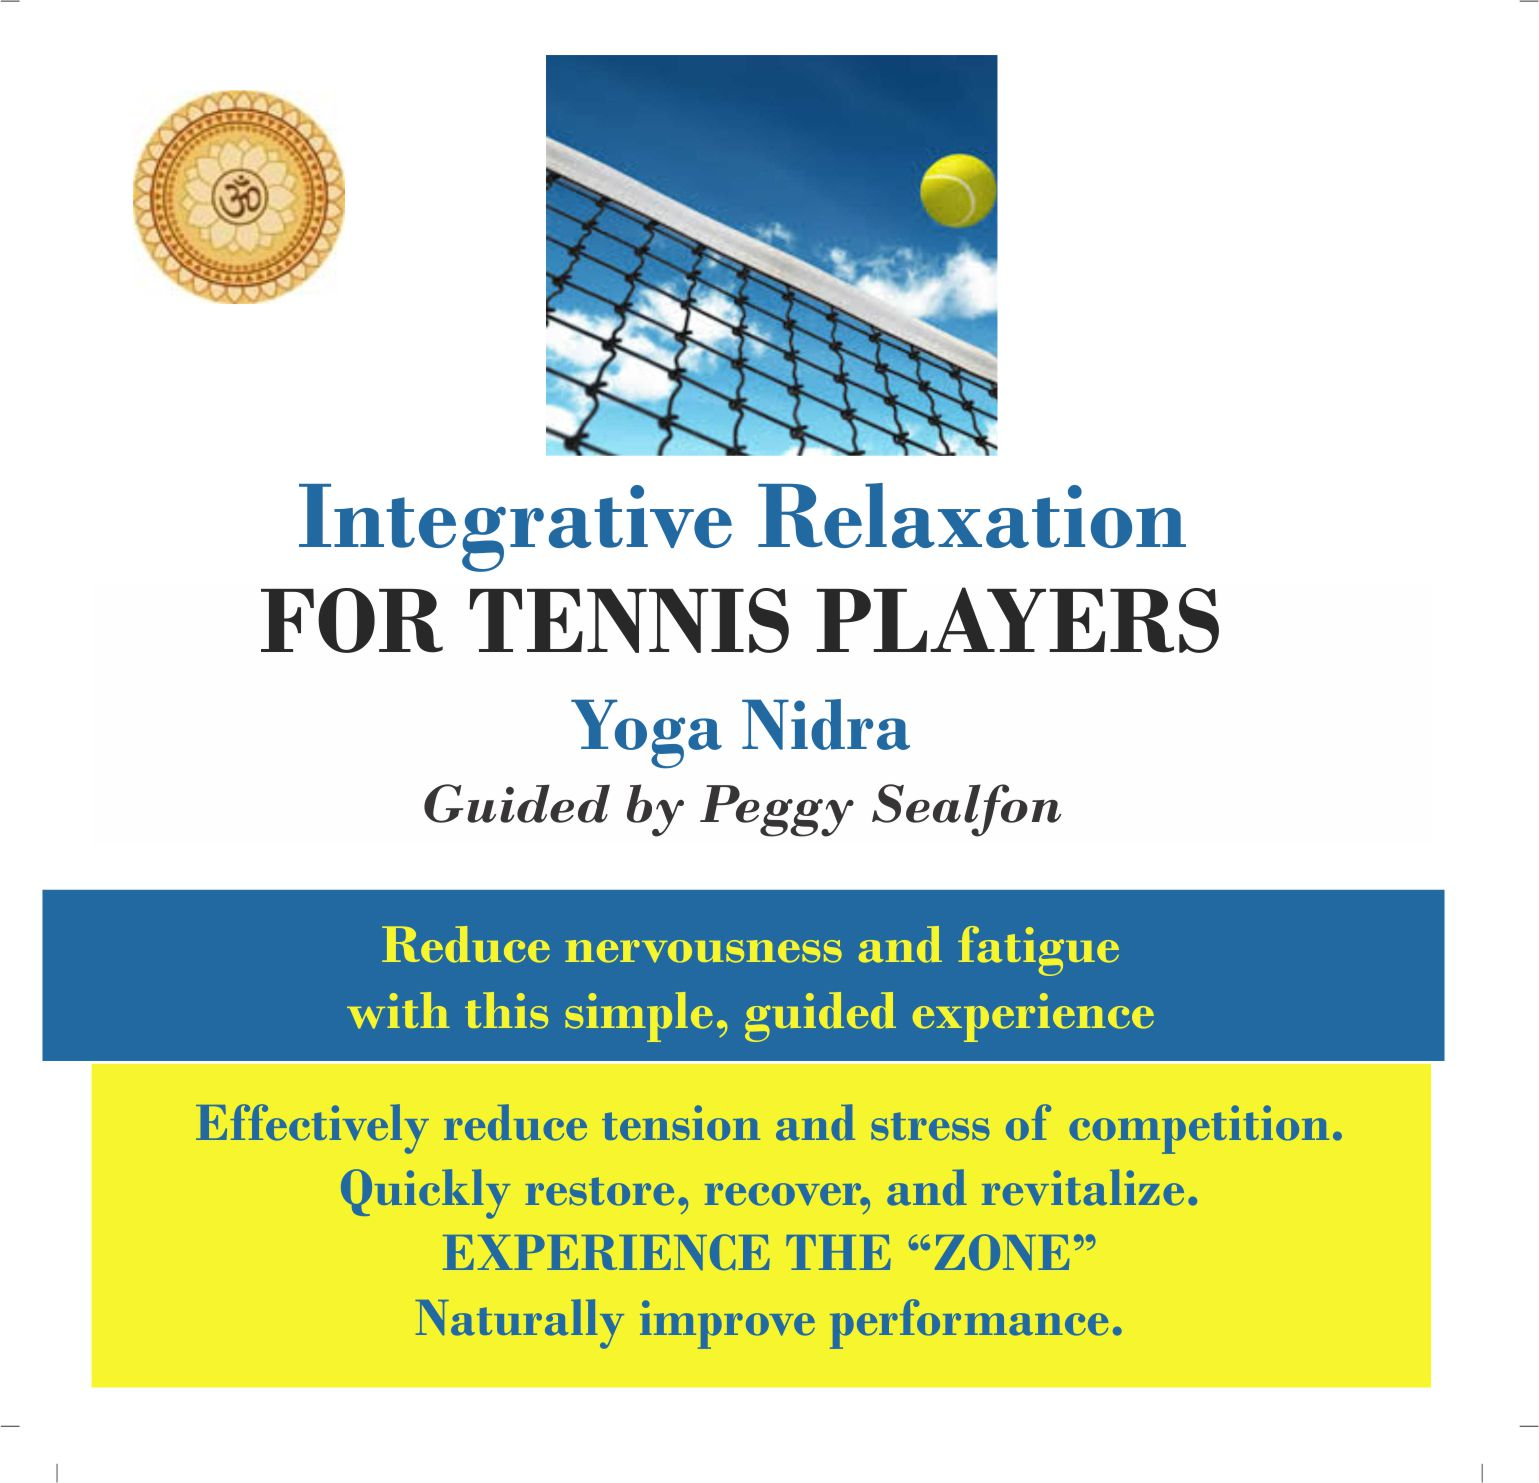 Integrative Relaxation for Tennis Players